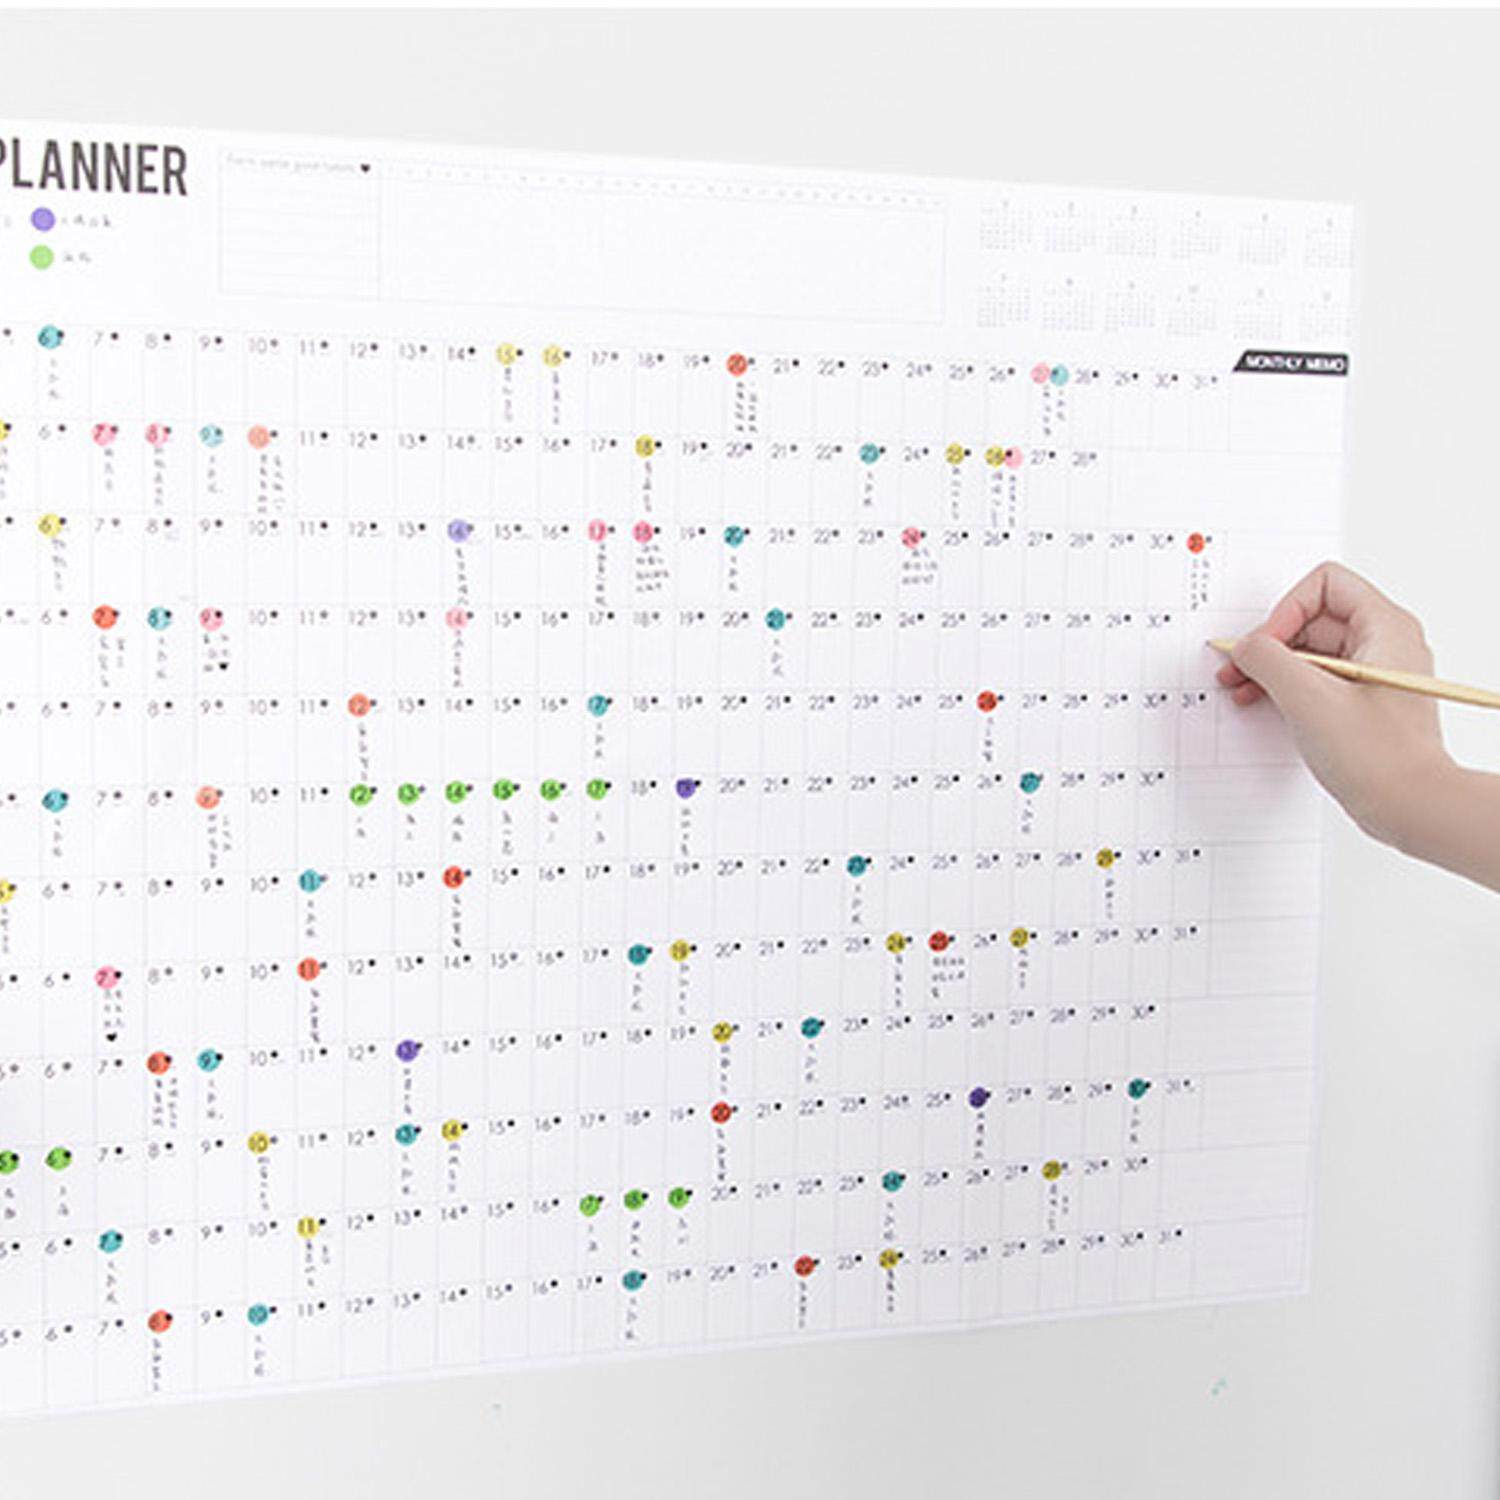 2019 Block Year Planner Daily Plan Paper Wall Calendar With 2 Sheet Eva Colorful Mark Stickers For Office School Home Supplies By The Bee Store.